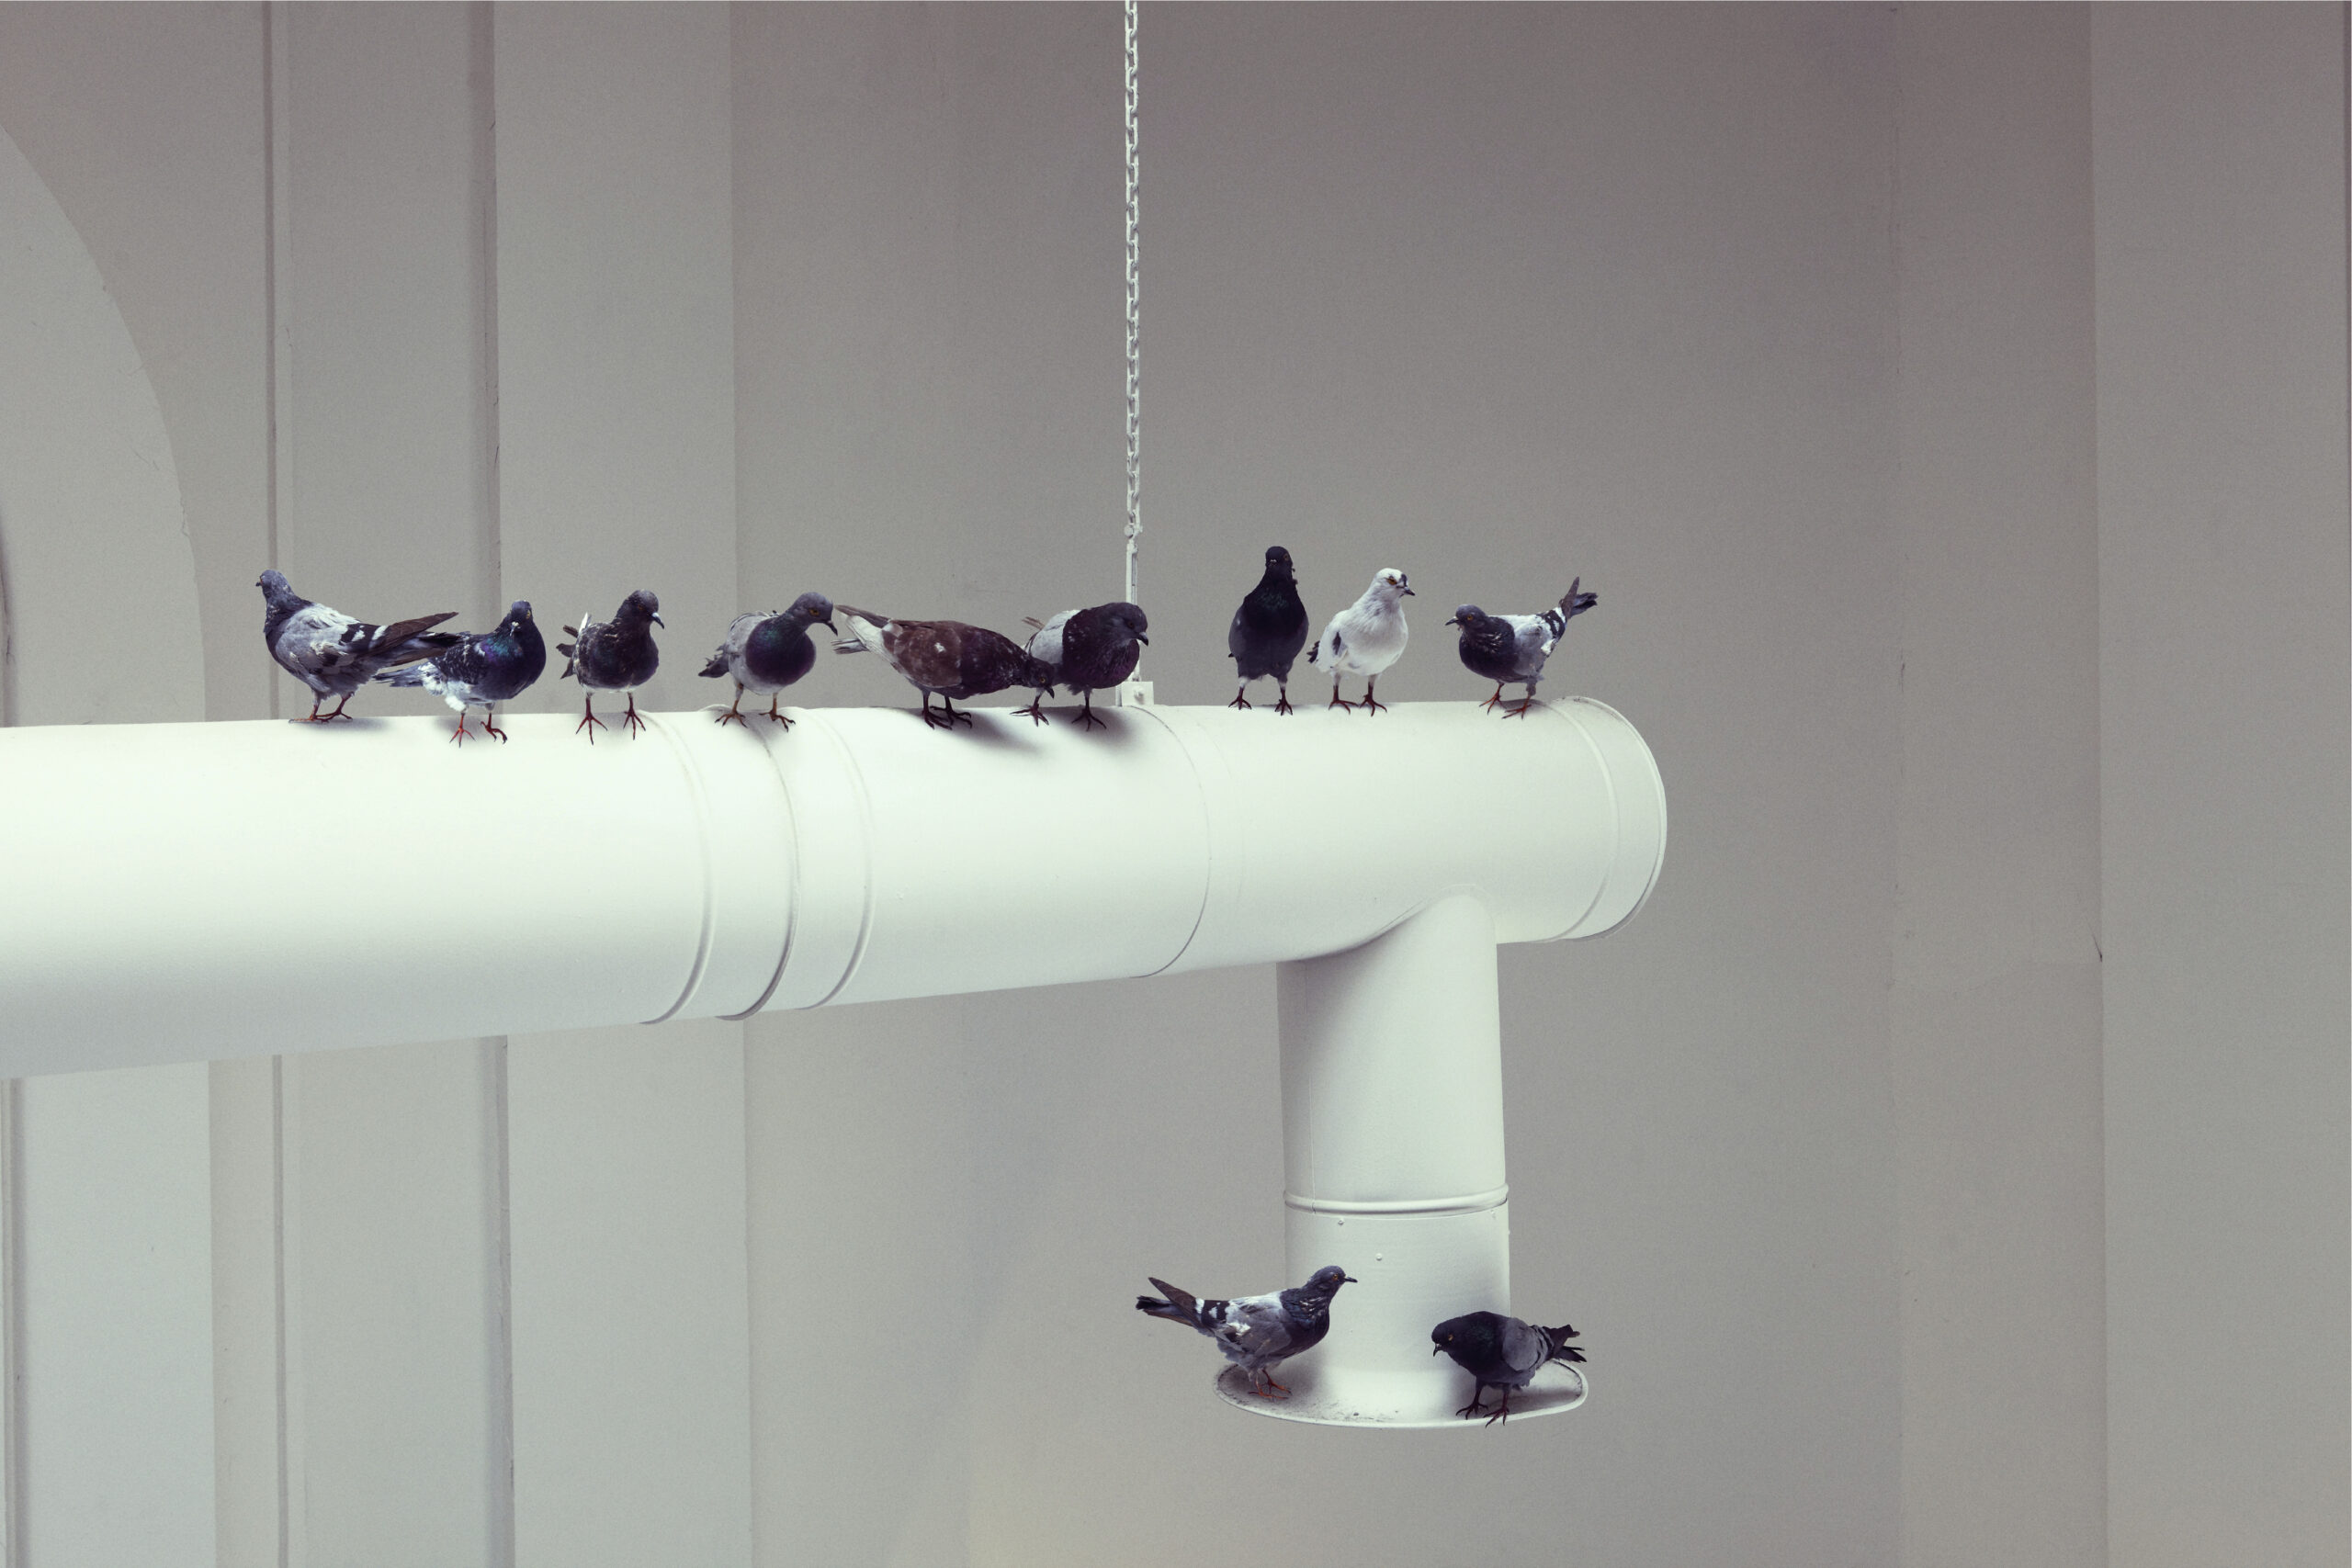 Maurizio Cattelan, Others, 2011, Taxidermied pigeons, Environmental dimensions  Installation view, 54th Venice Biennale, 2011  Courtesy Maurizio Cattelan's Archive  Photo Pier Paolo Ferrari